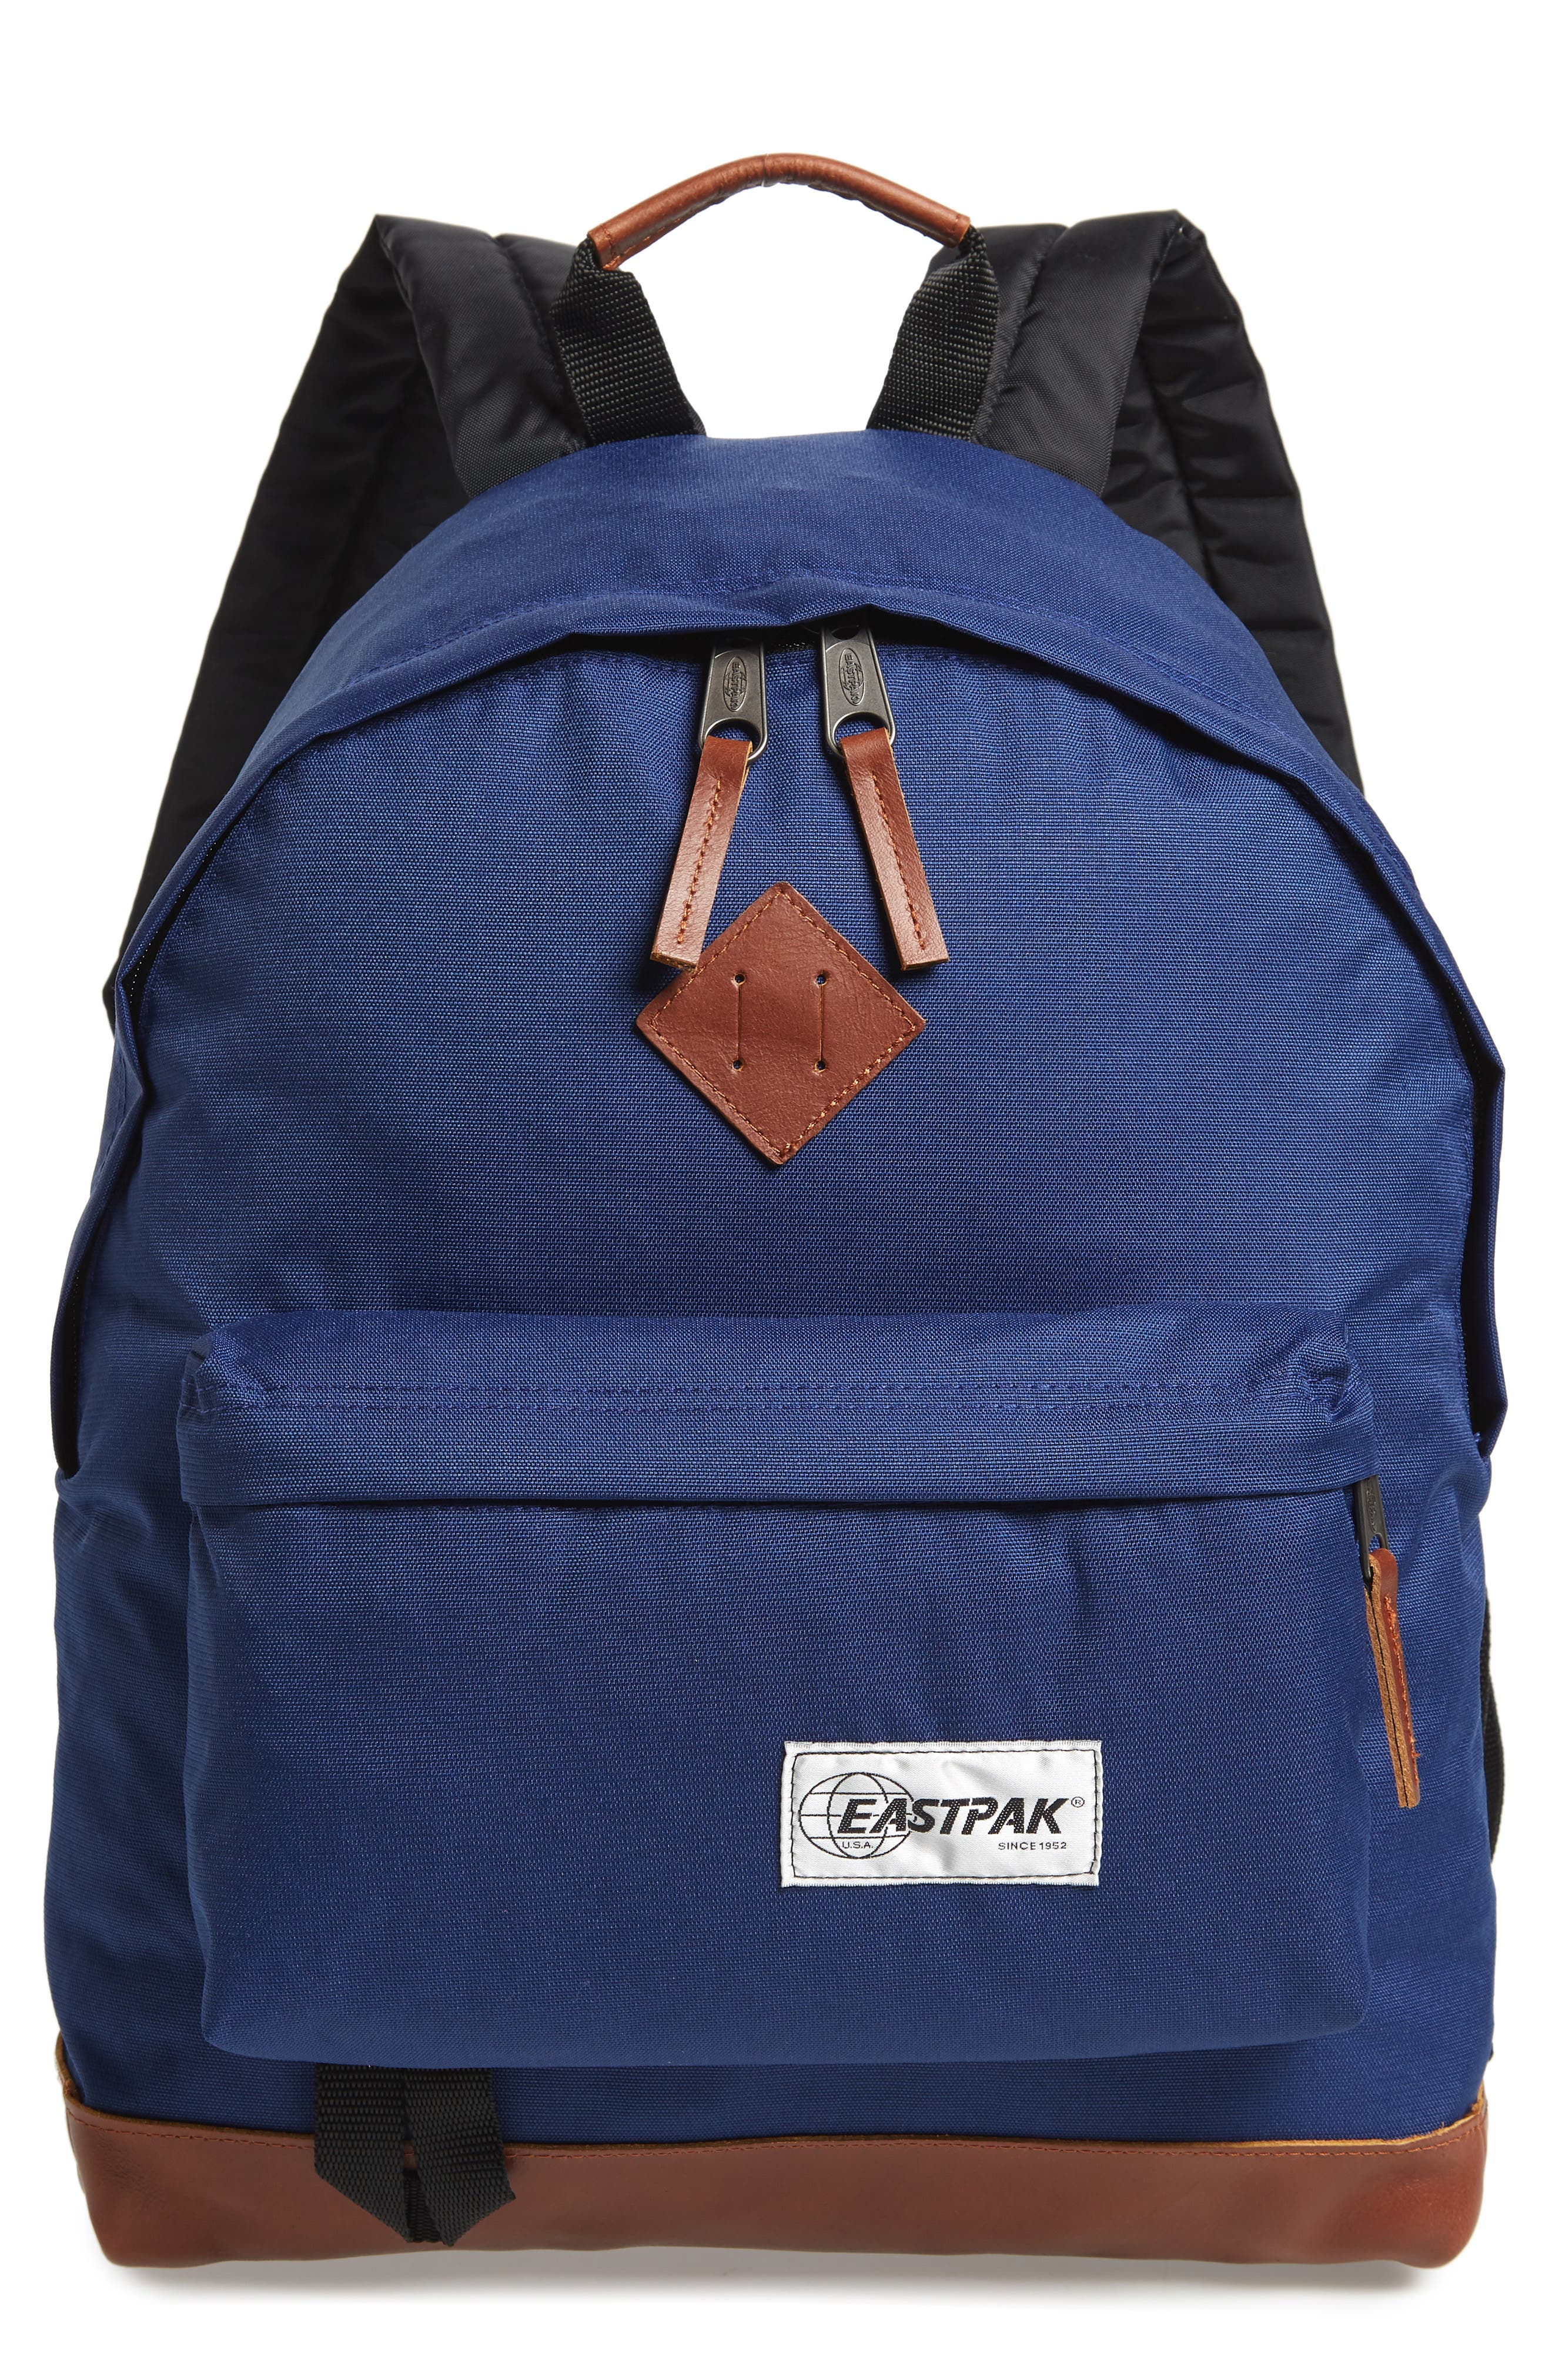 WYOMING BACKPACK - BLUE